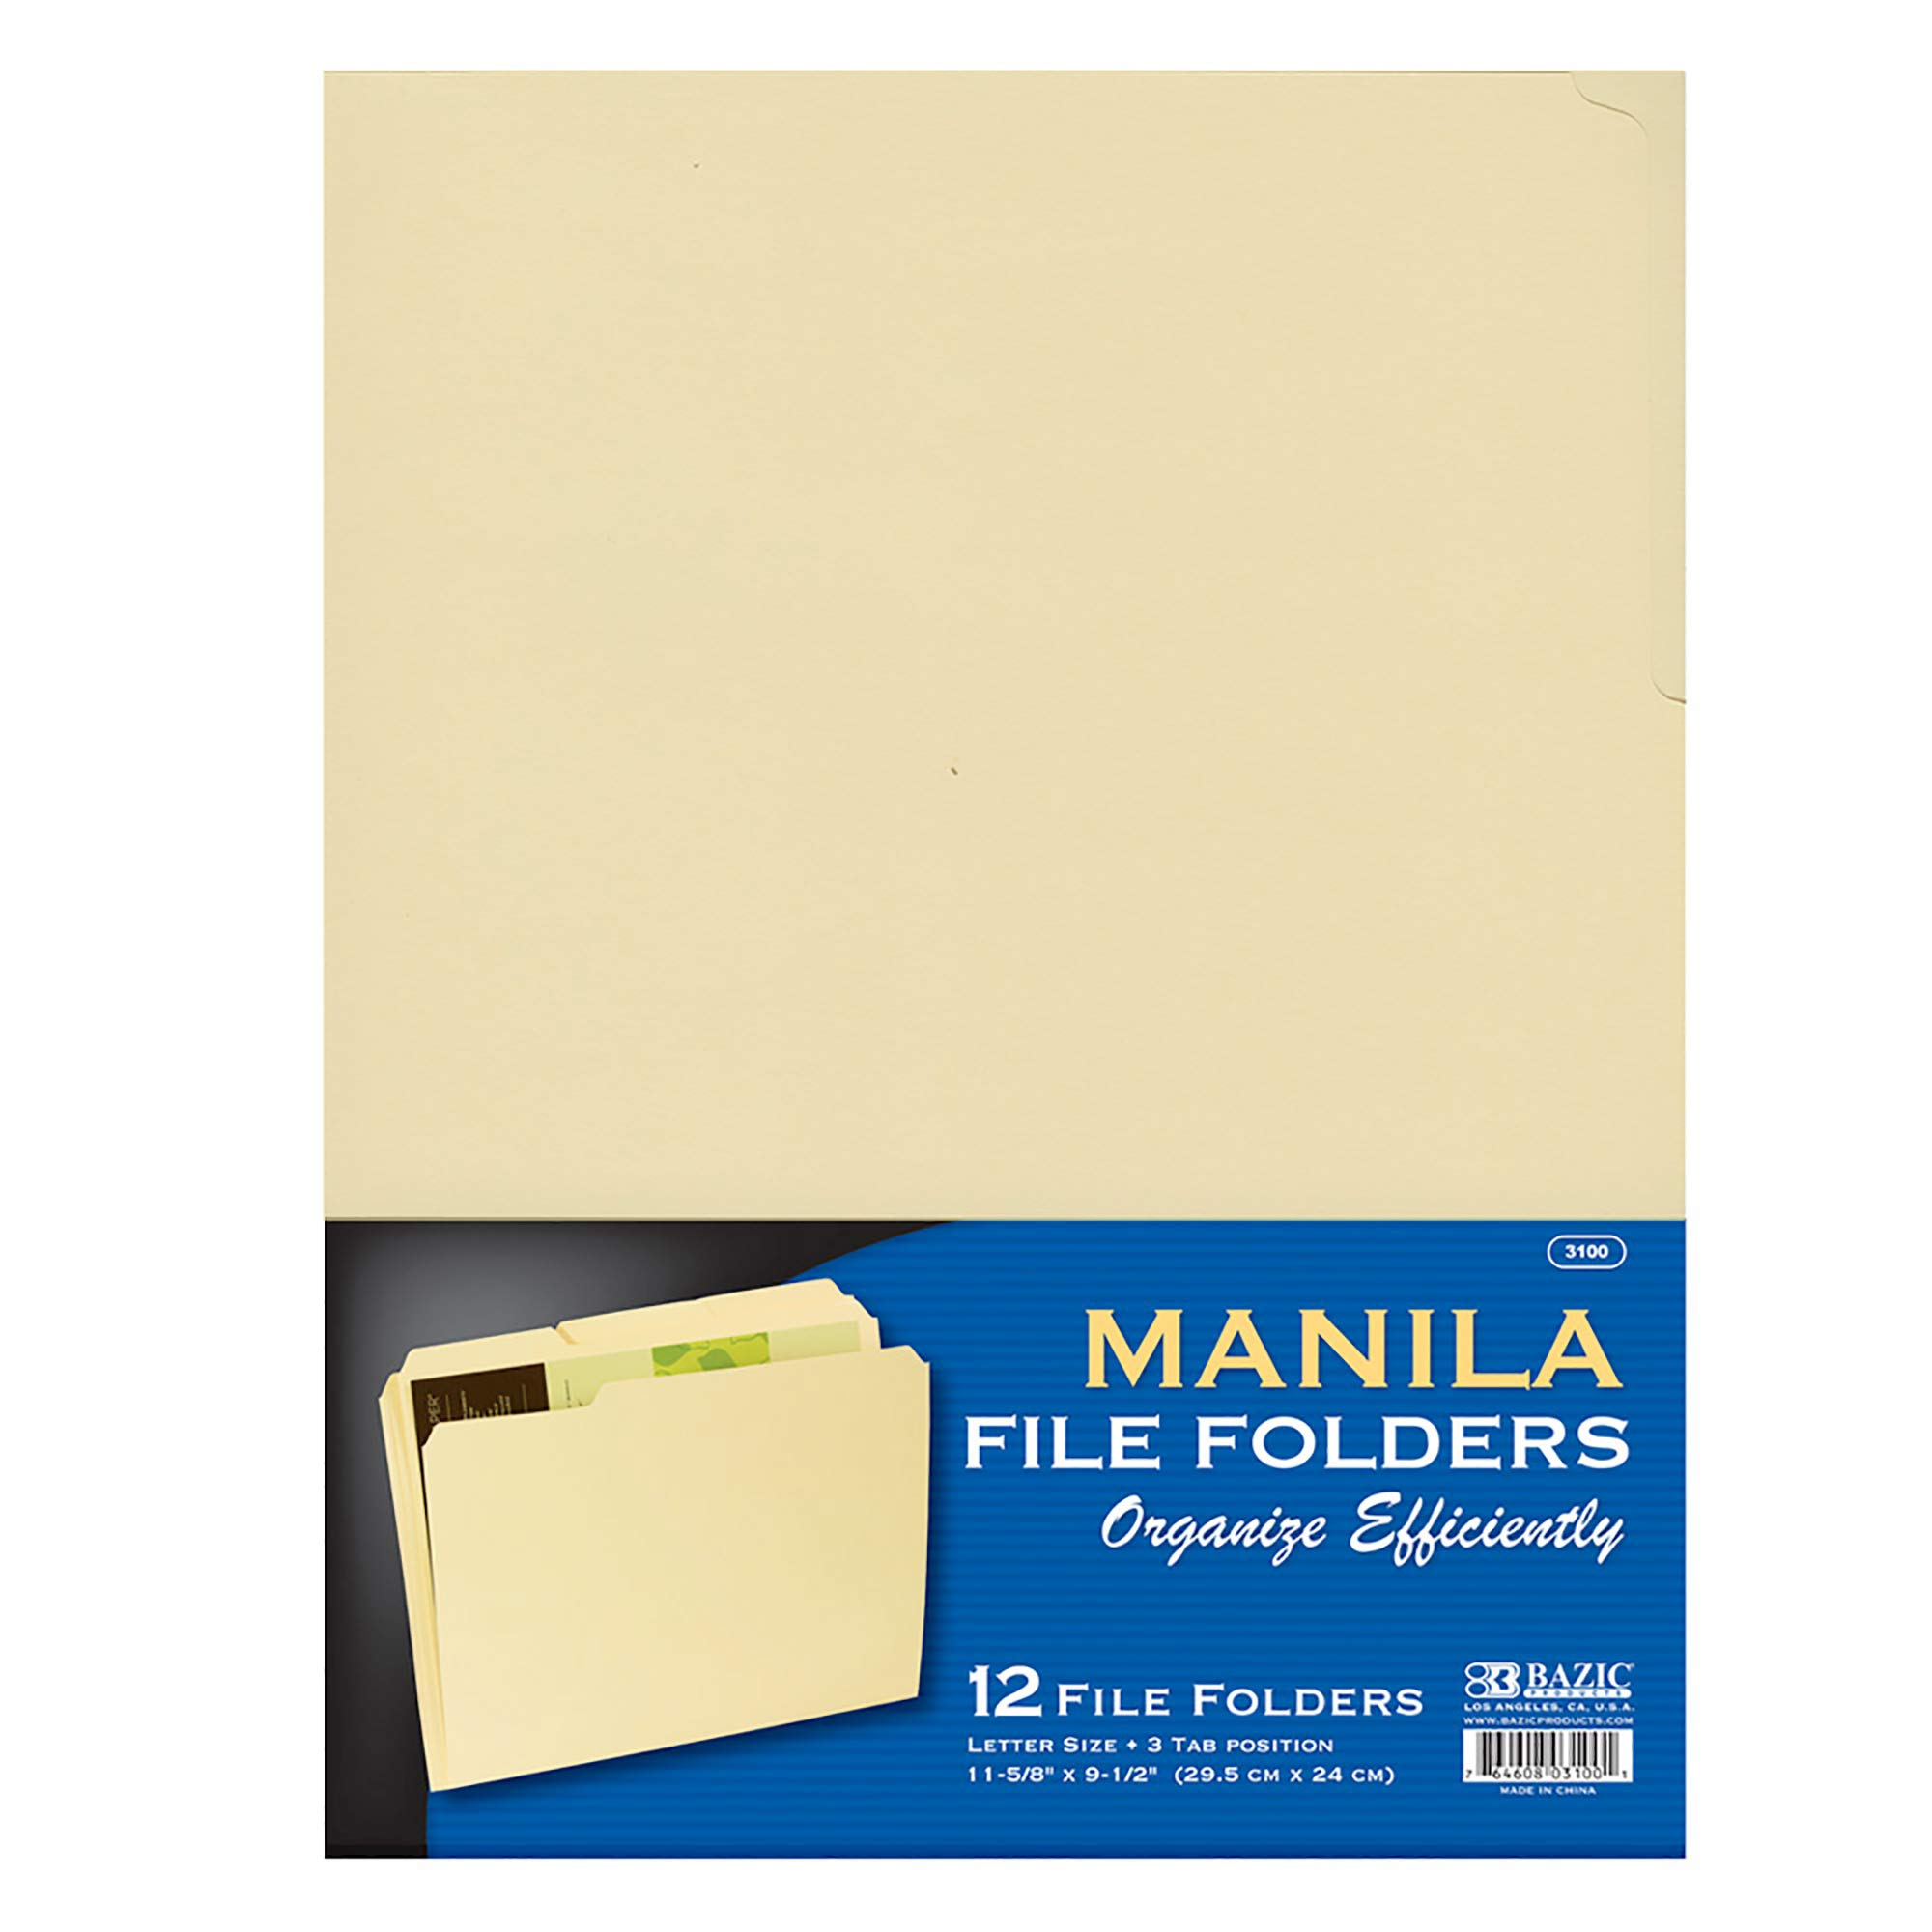 BAZIC 1/3 Cut Letter Size Manila File Folder, Classic Manila Tabs Left Right Center Positions, Great for Organizing Easy Files Document Storage, Office Home Teacher Business (12/Pack), 1-Pack